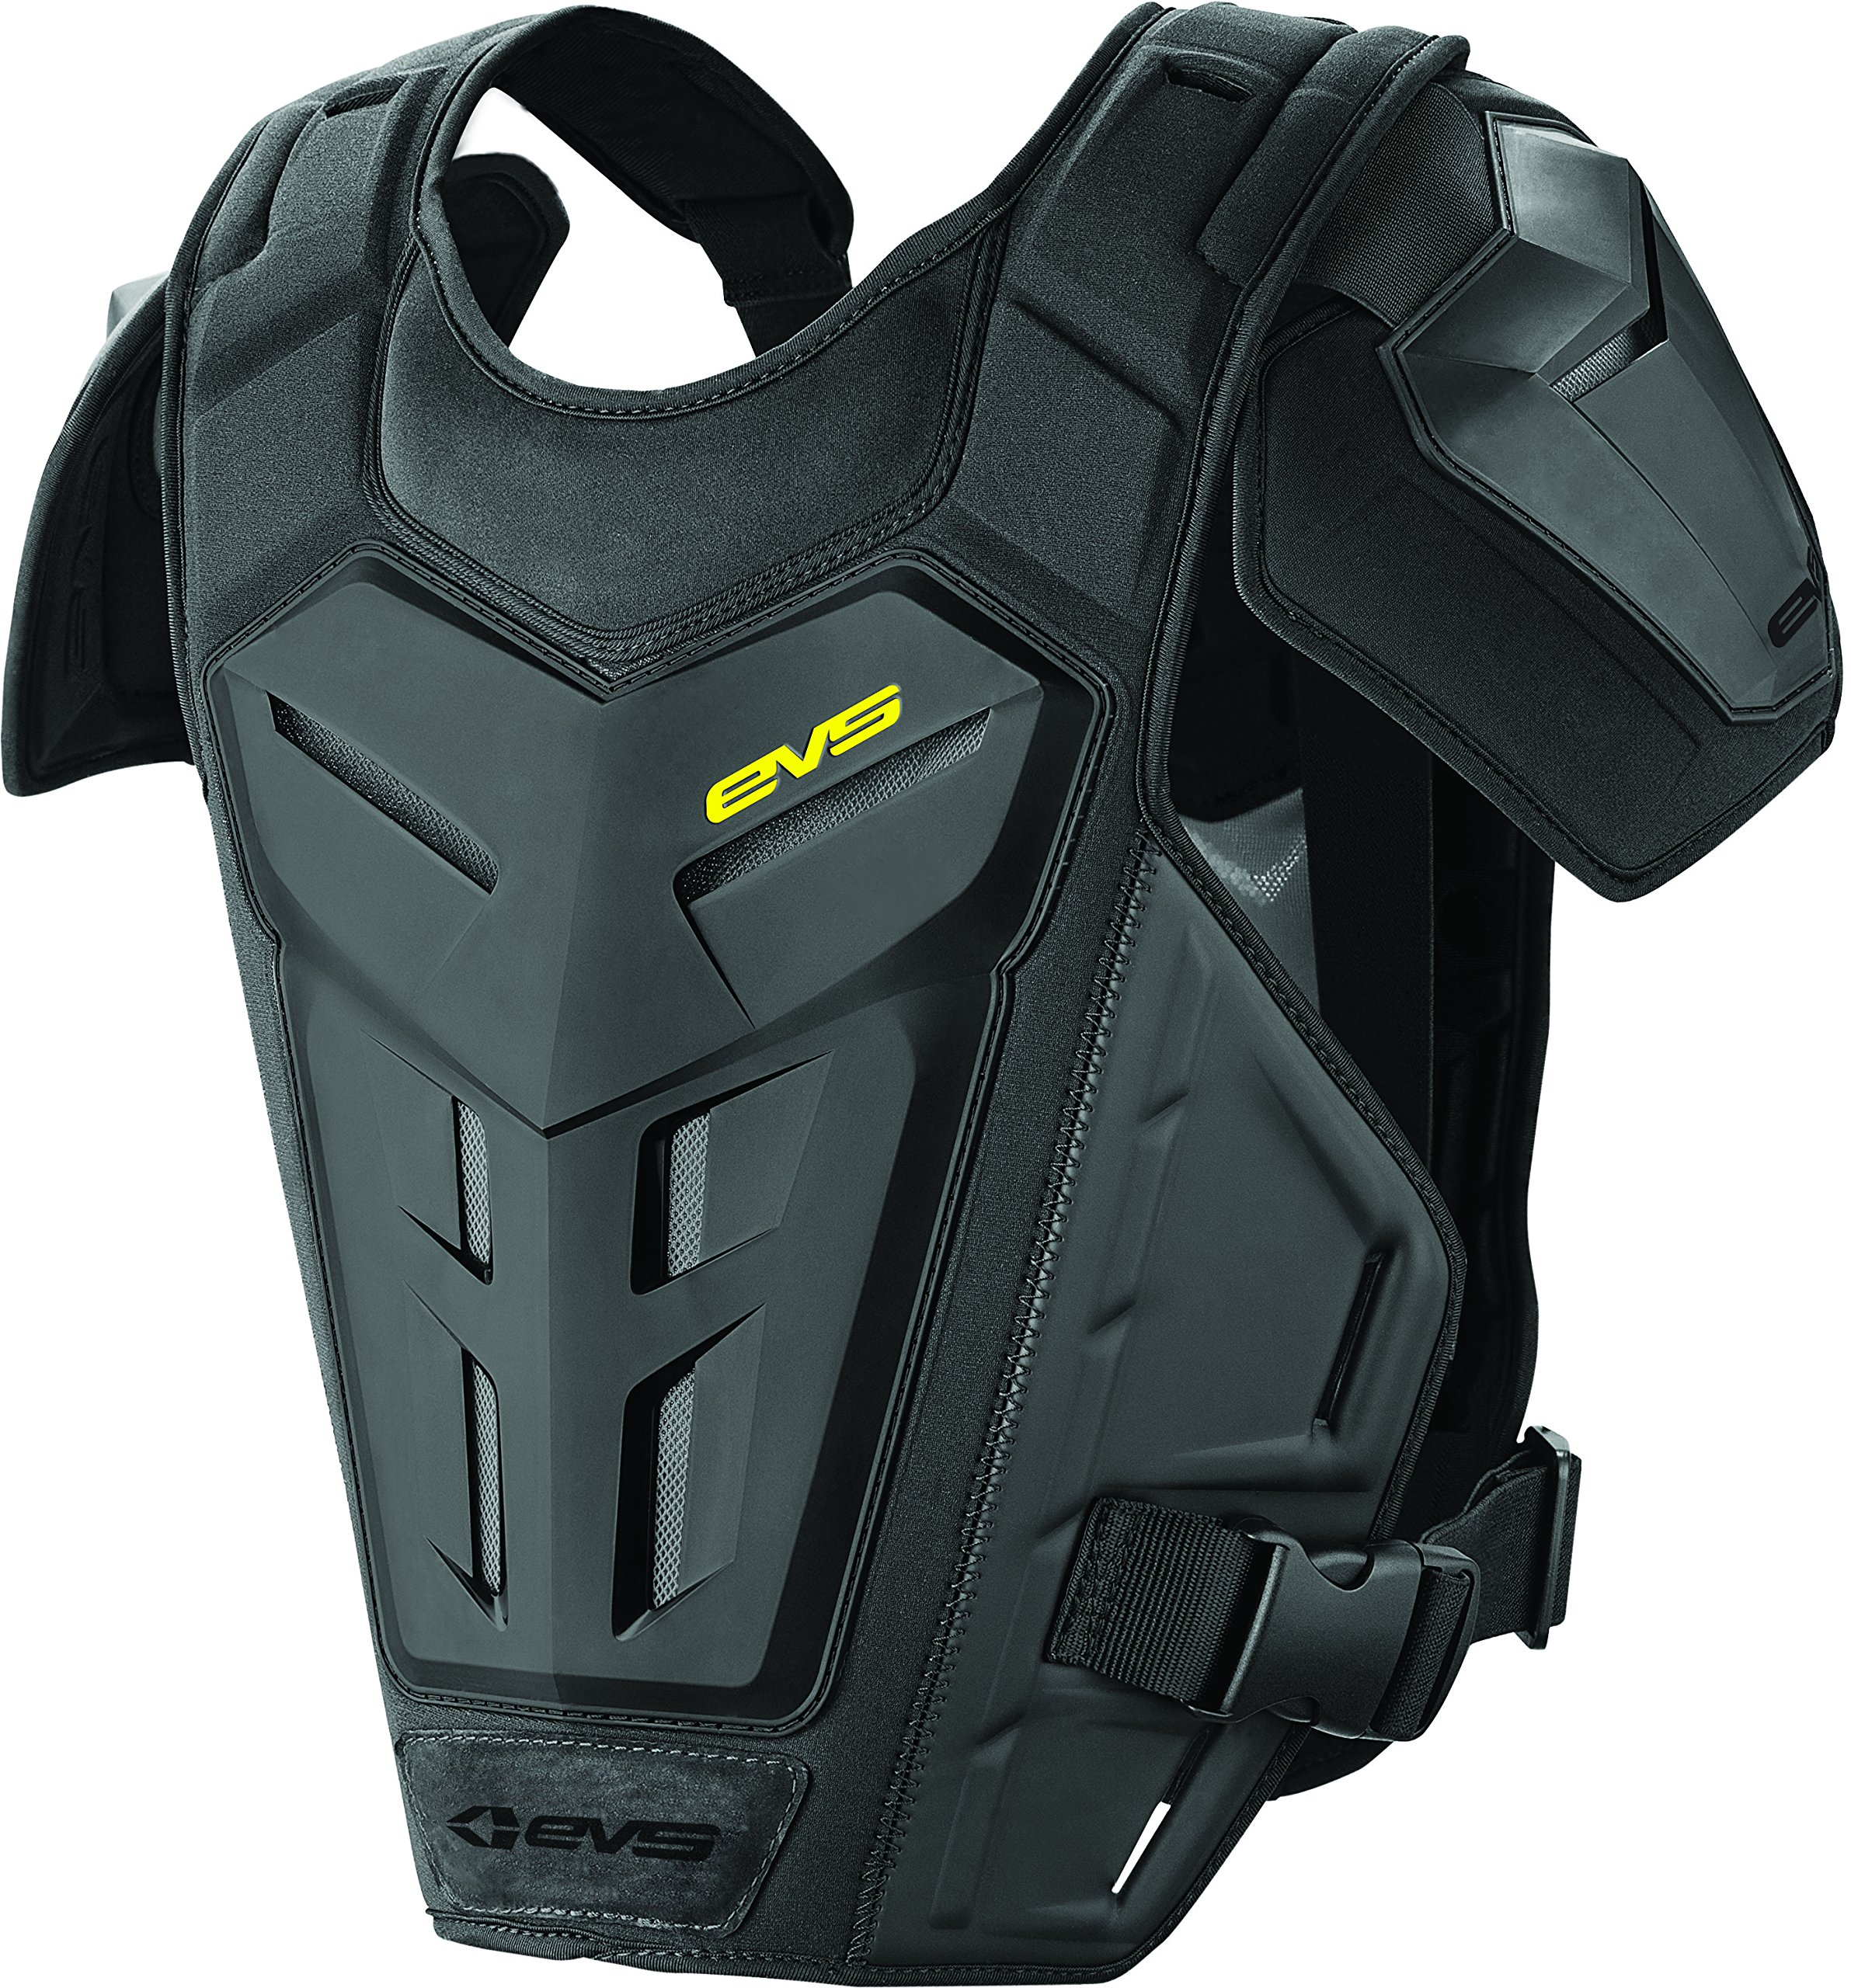 EVS Revo 5 Roost Guard-Black-S/M by EVS (Image #1)